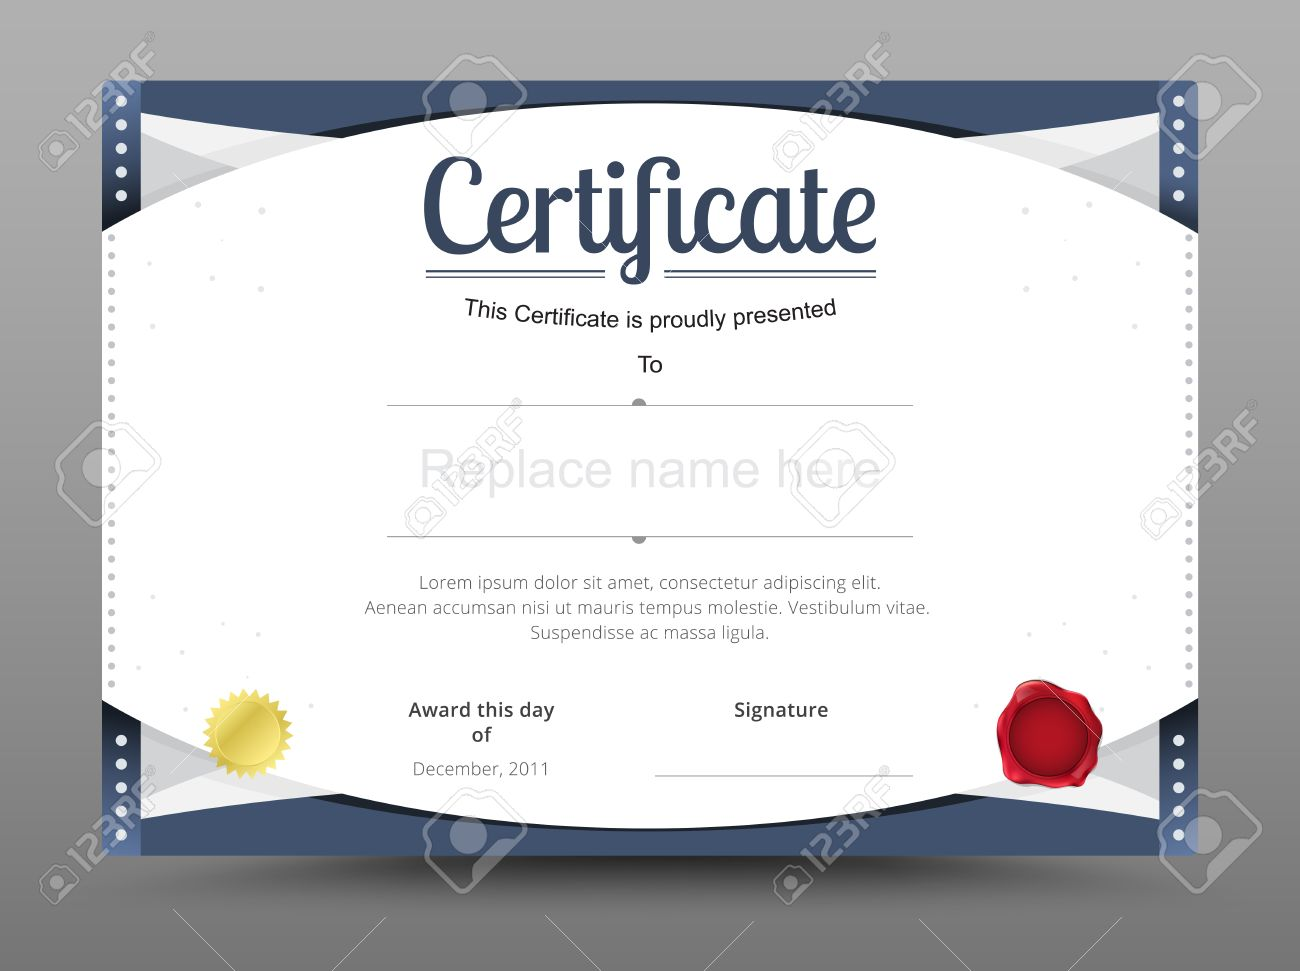 Comfortable business certificates templates photos entry level business certificates templates summer camp leader cover letter 1betcityfo Image collections